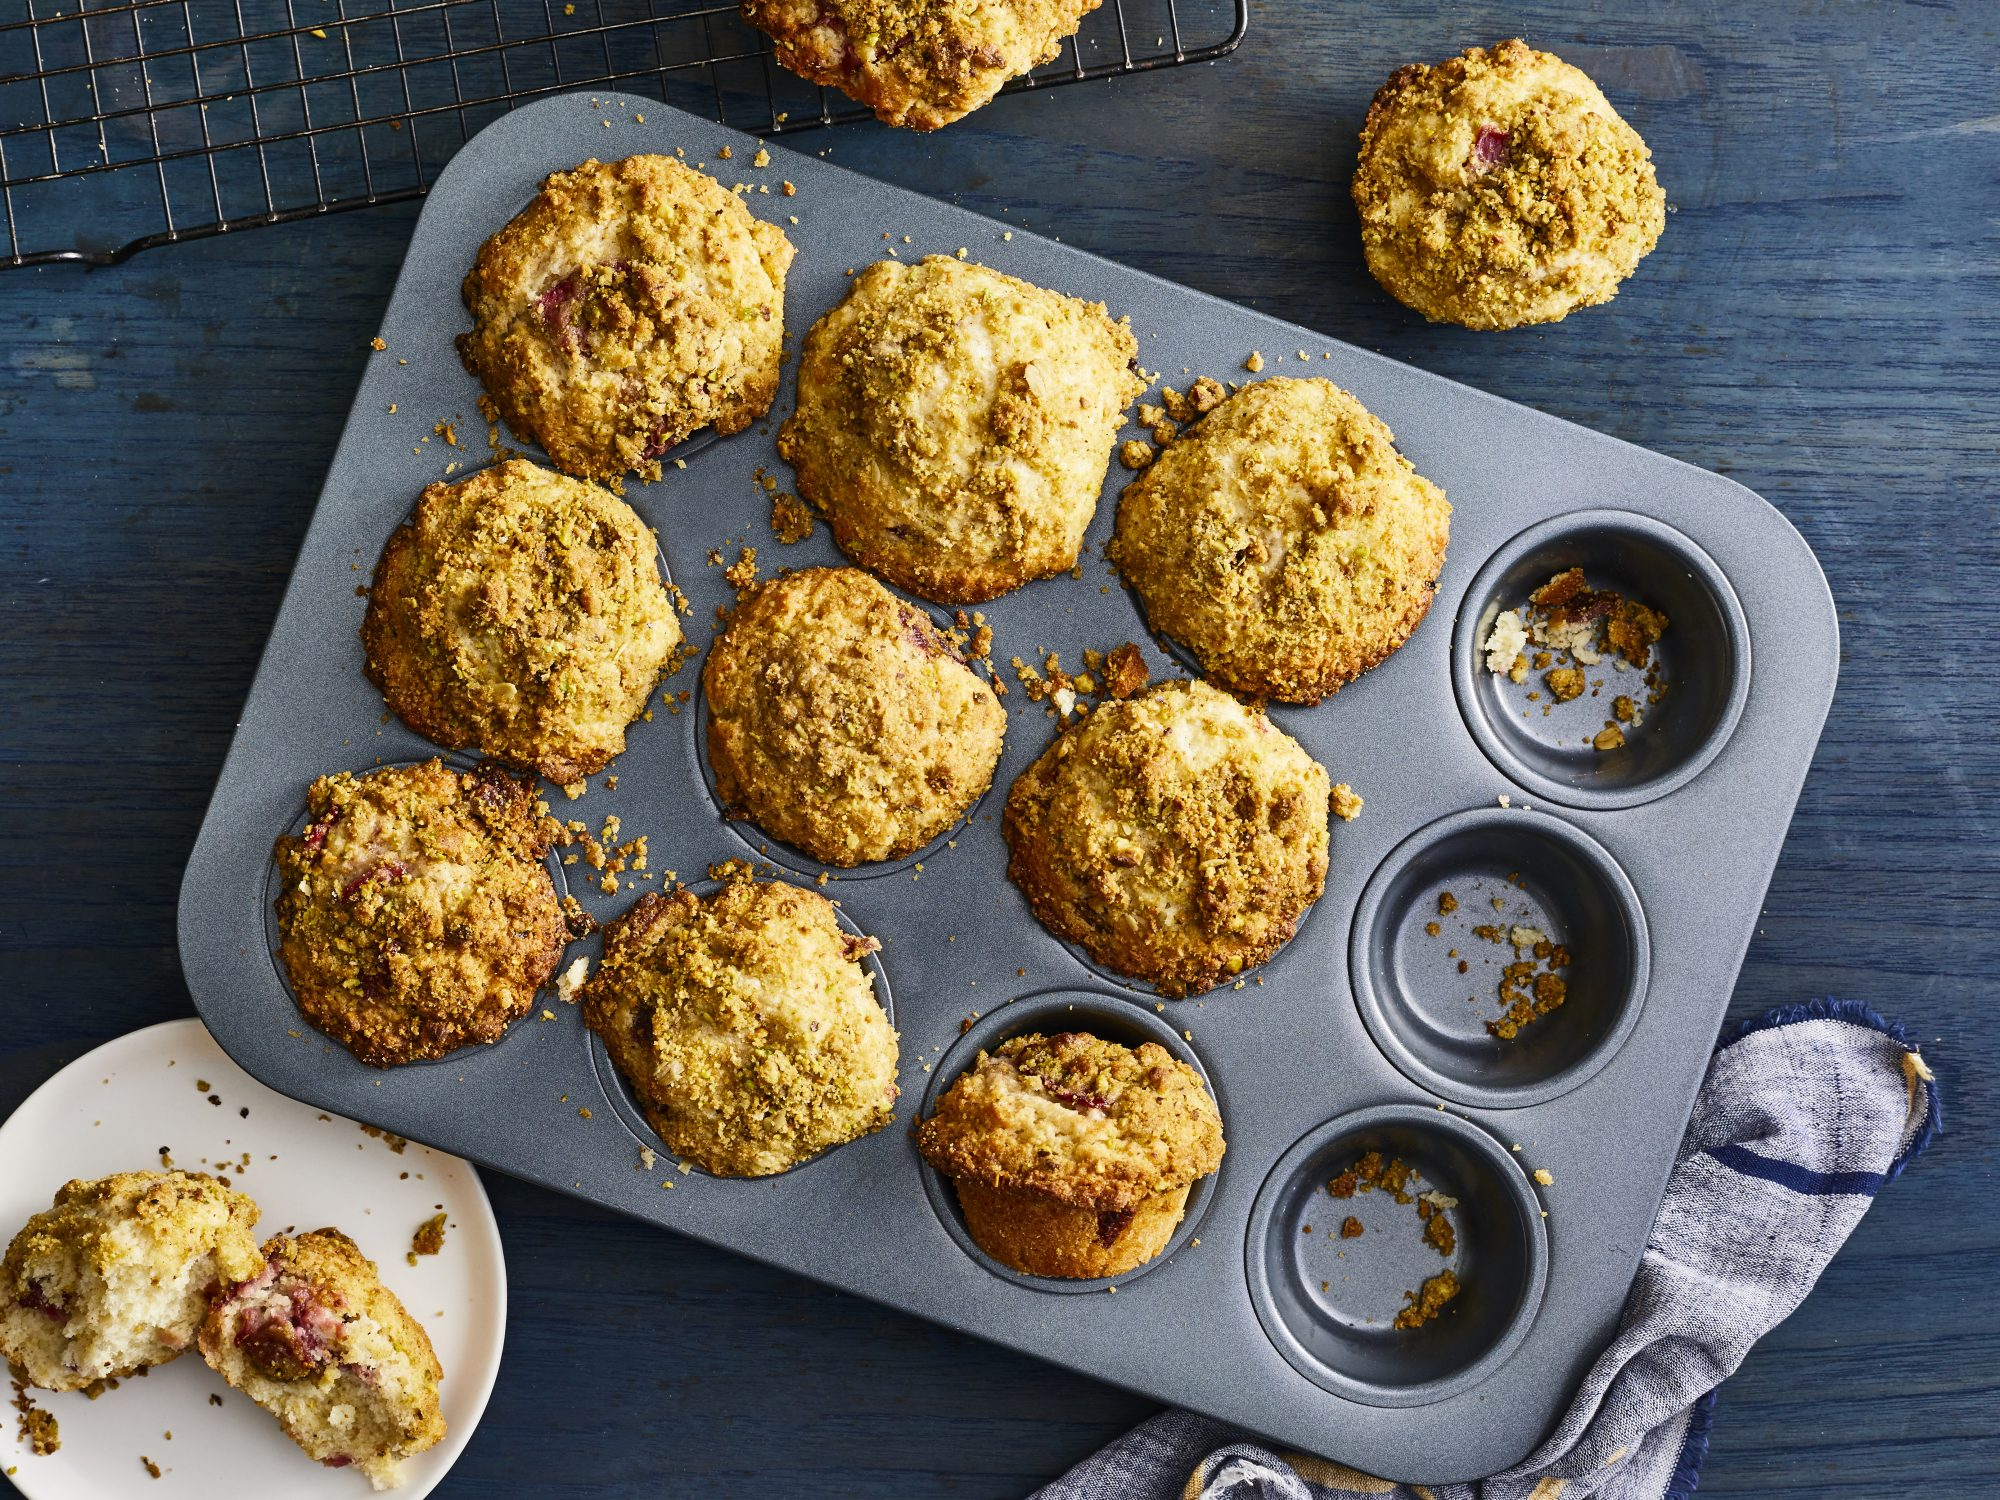 Roasted Strawberry-Rhubarb Muffins with Pistachio Streusel